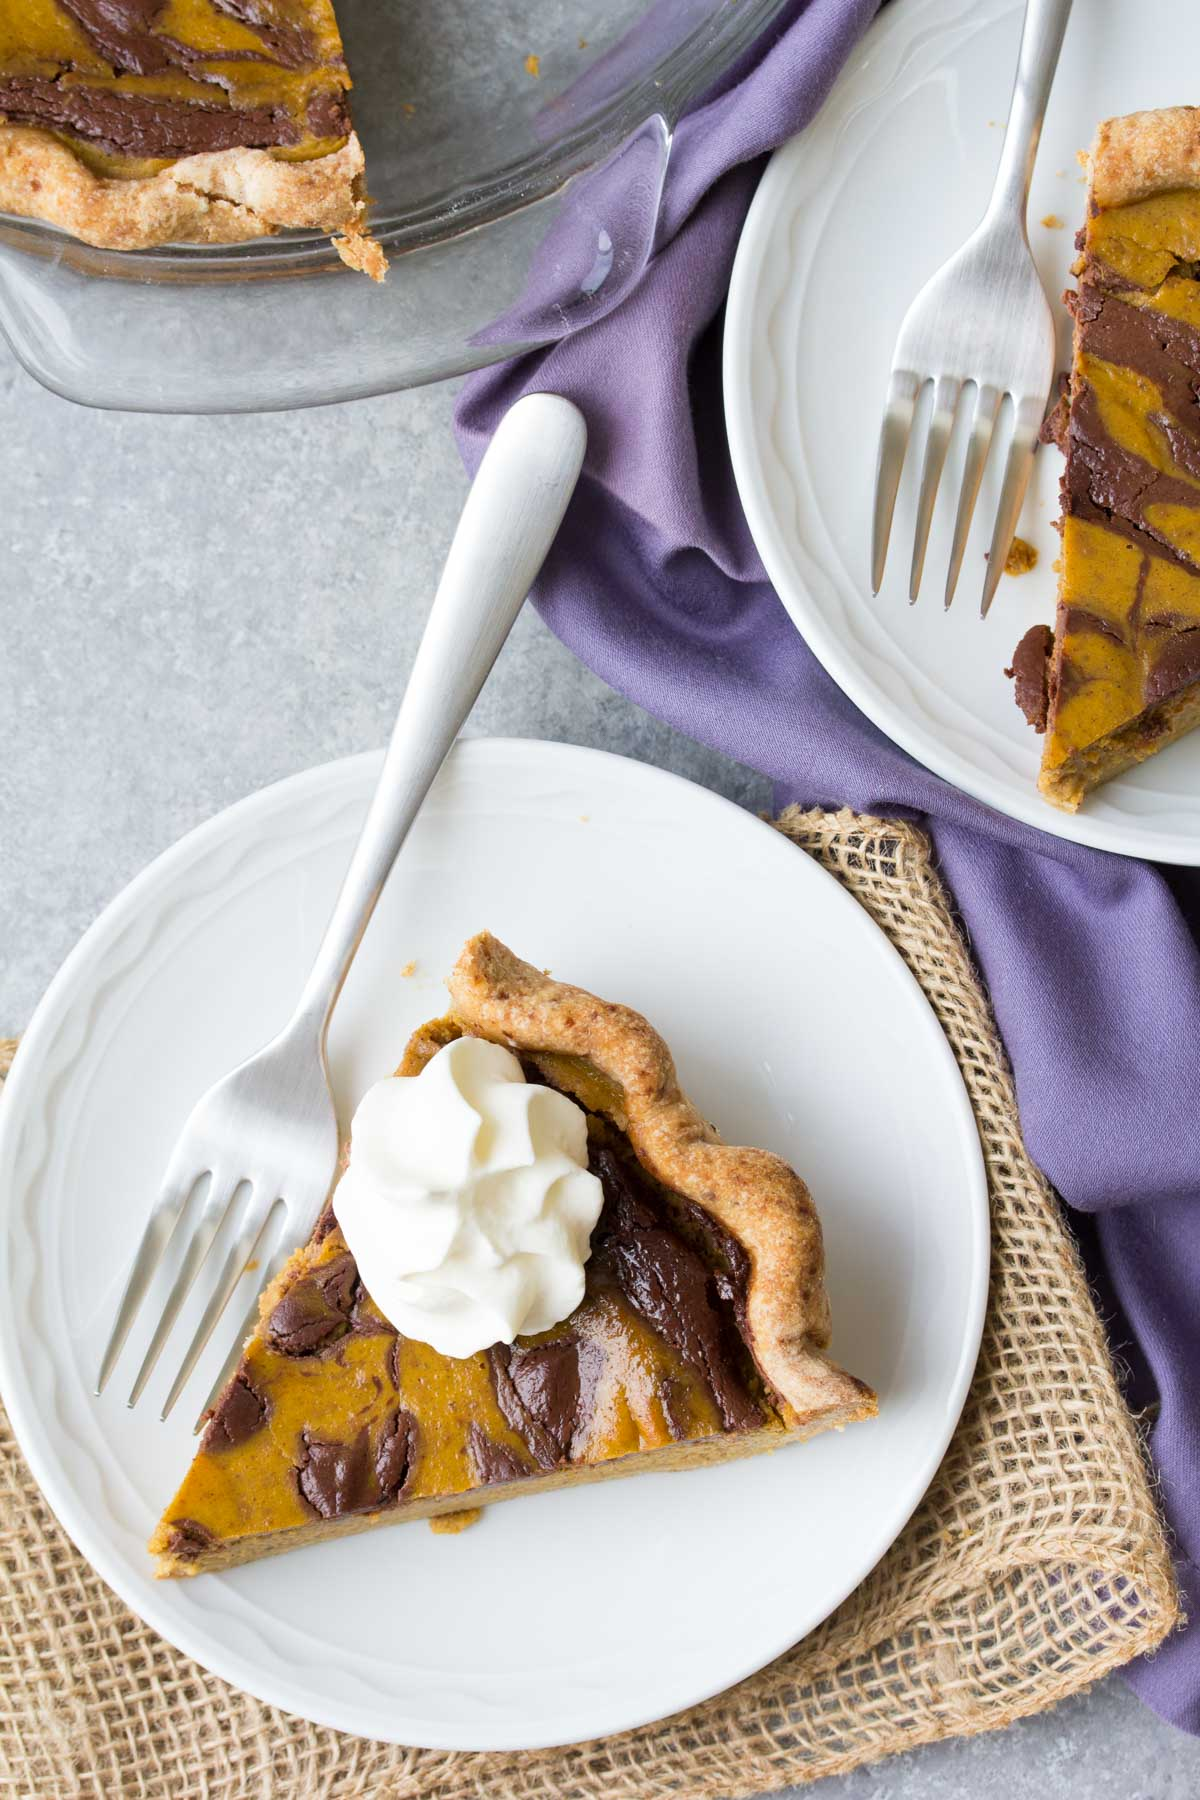 Swirled Chocolate Pumpkin Pie is our favorite Thanksgiving dessert! Make this healthier chocolate pumpkin pie for your holiday meal. Made with pure maple syrup, dark chocolate and a whole wheat crust. | www.kristineskitchenblog.com